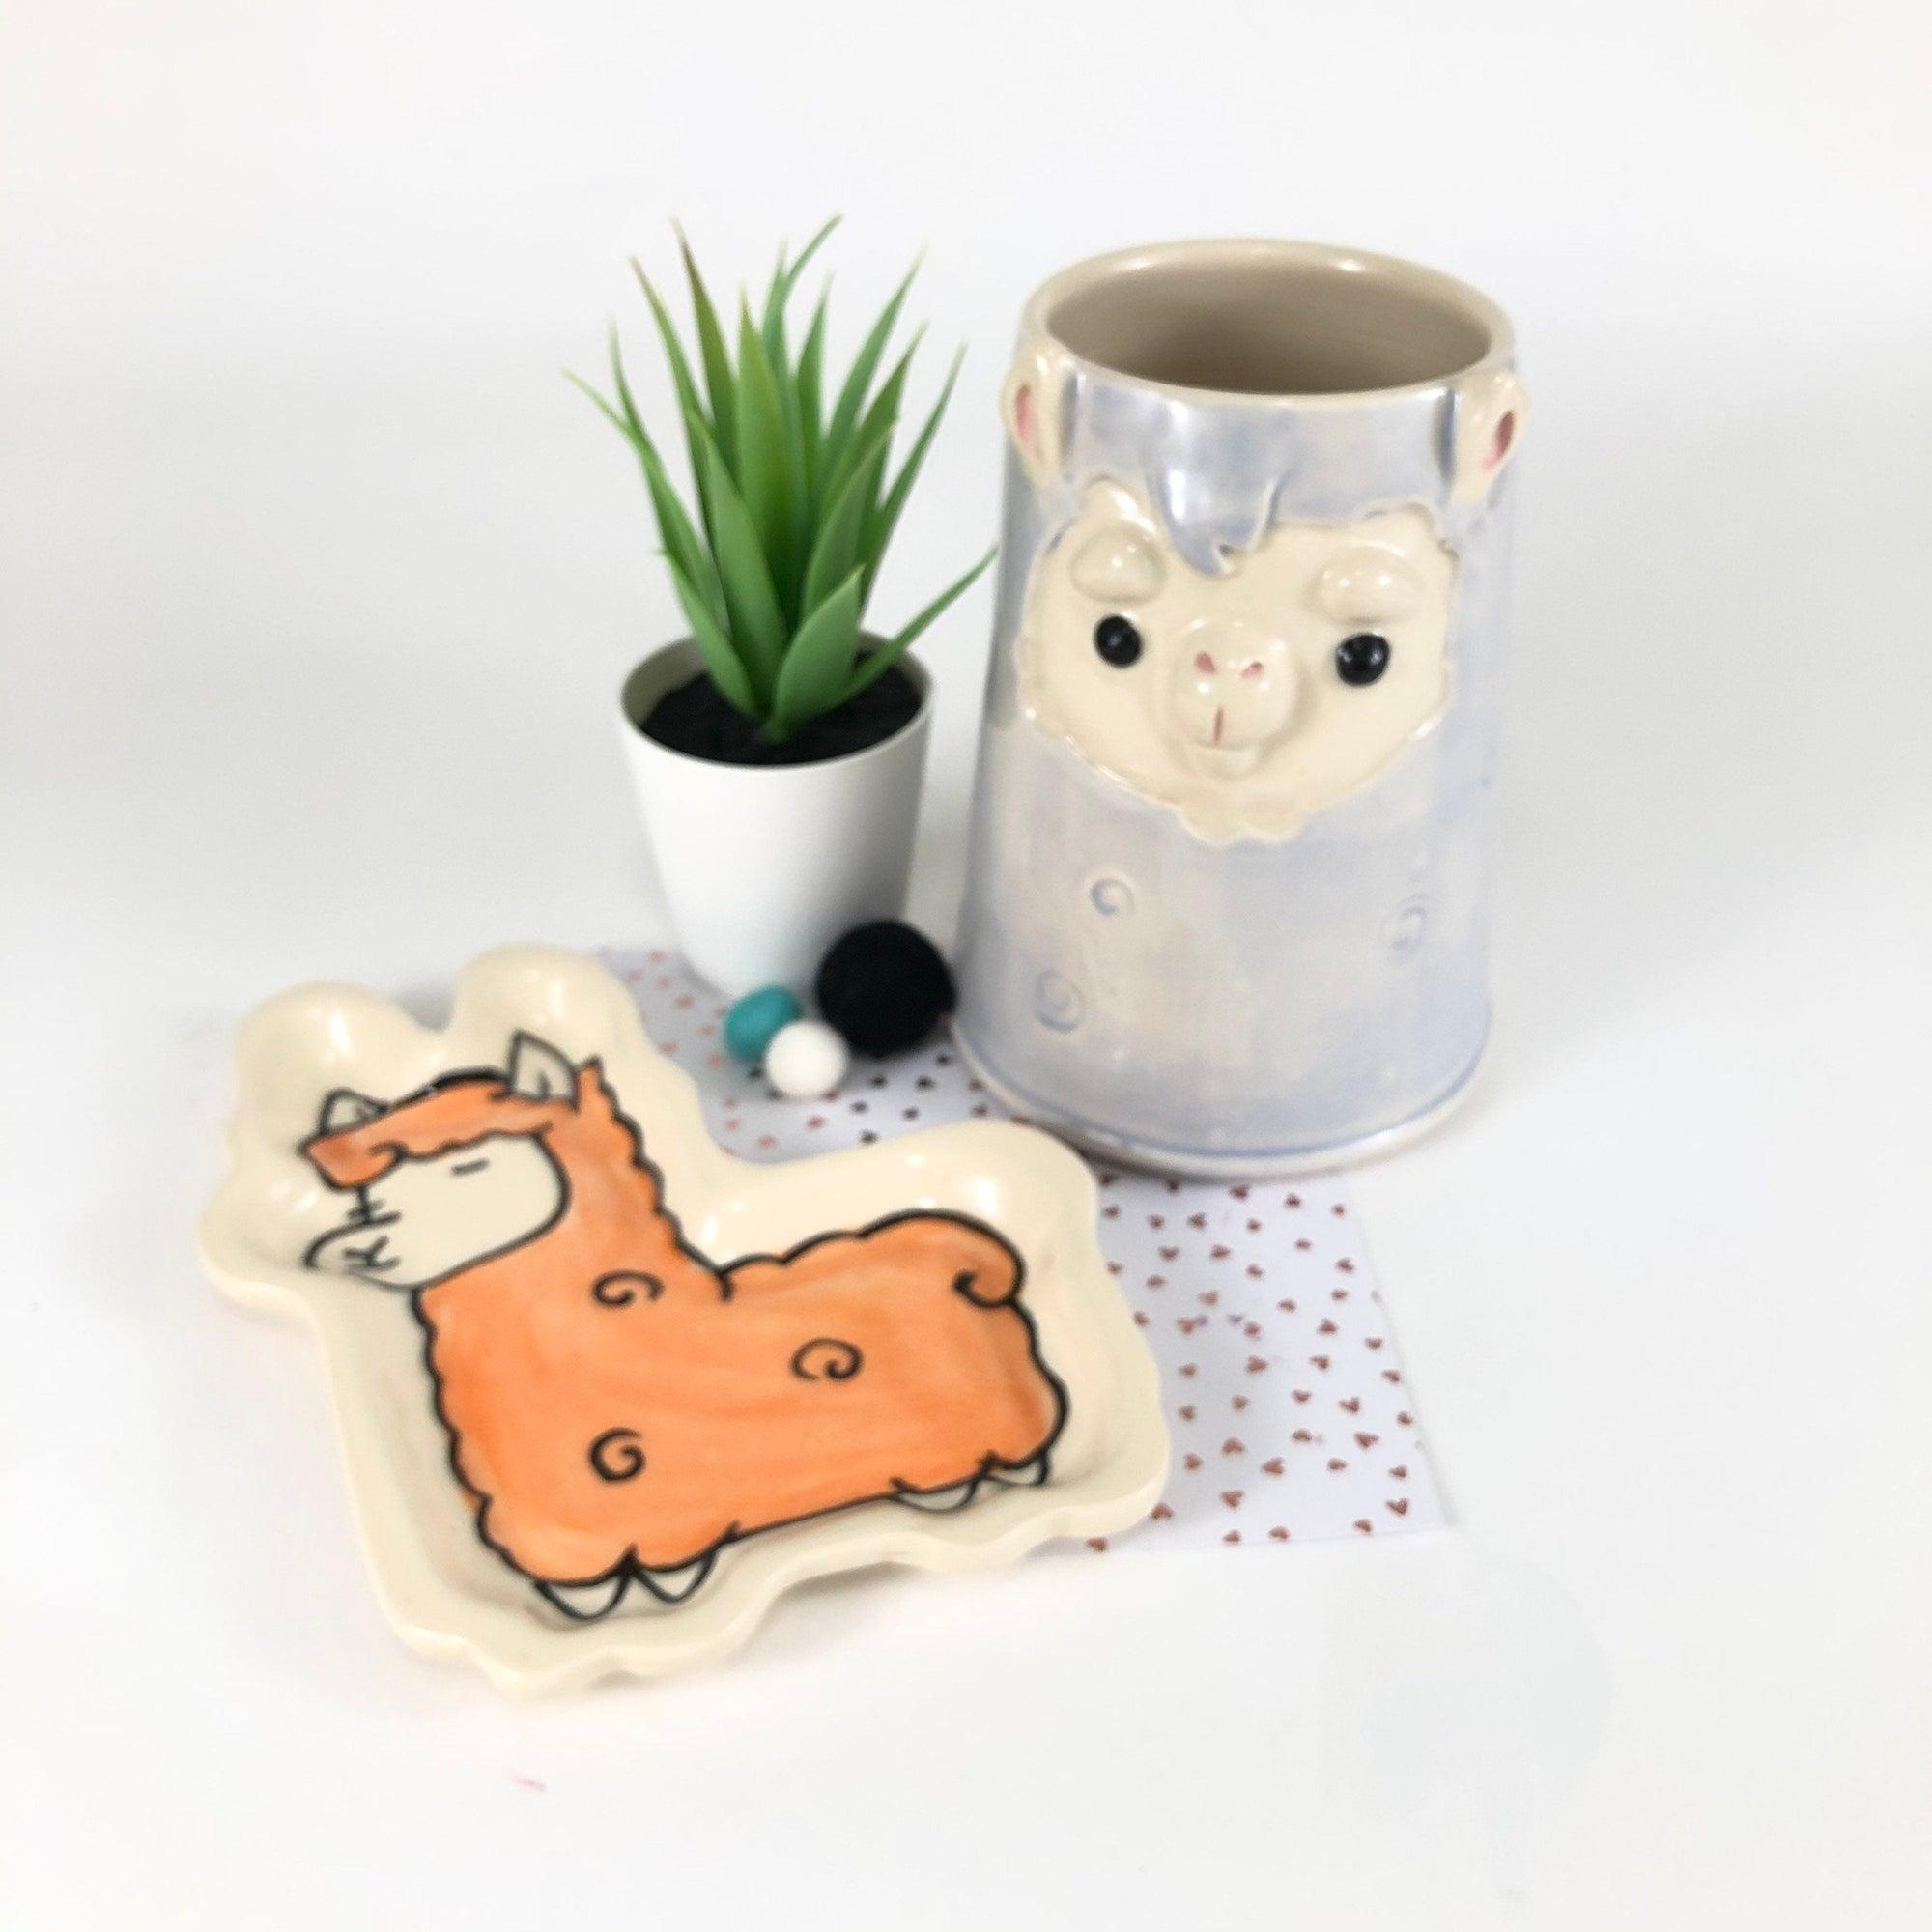 Llama Mug and Spoon Rest Set